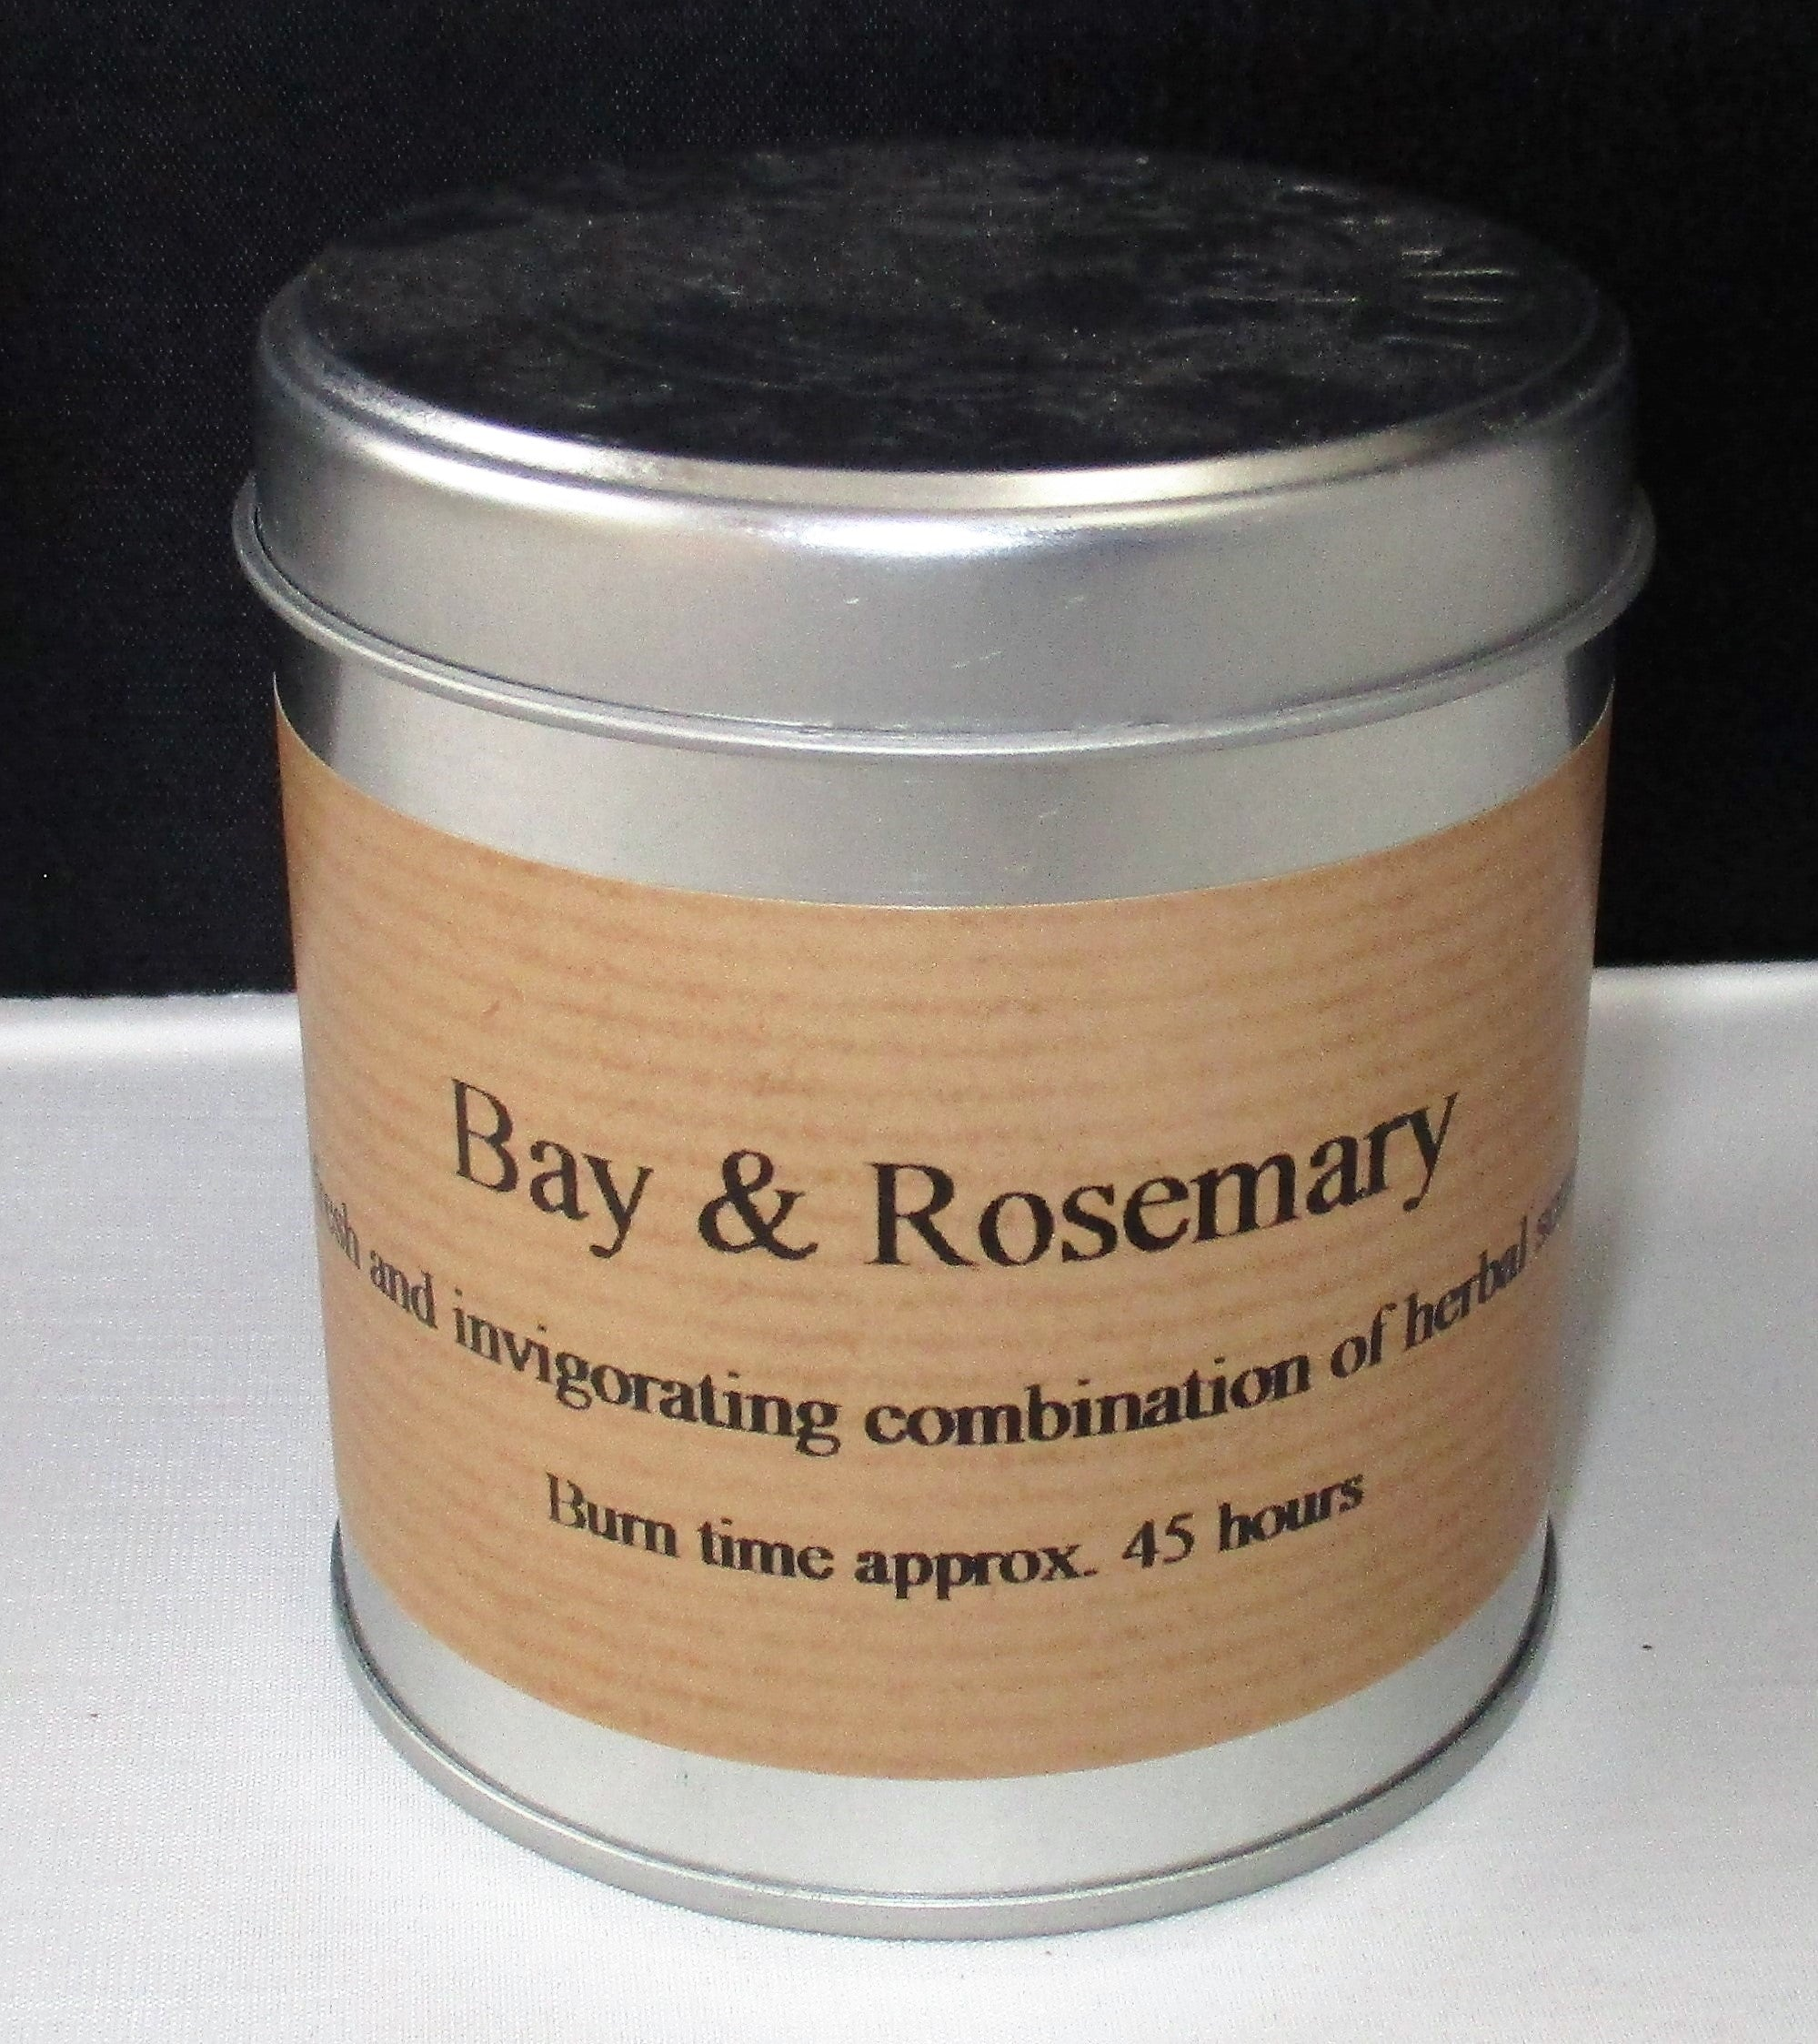 St Eval Scented Candle Tins